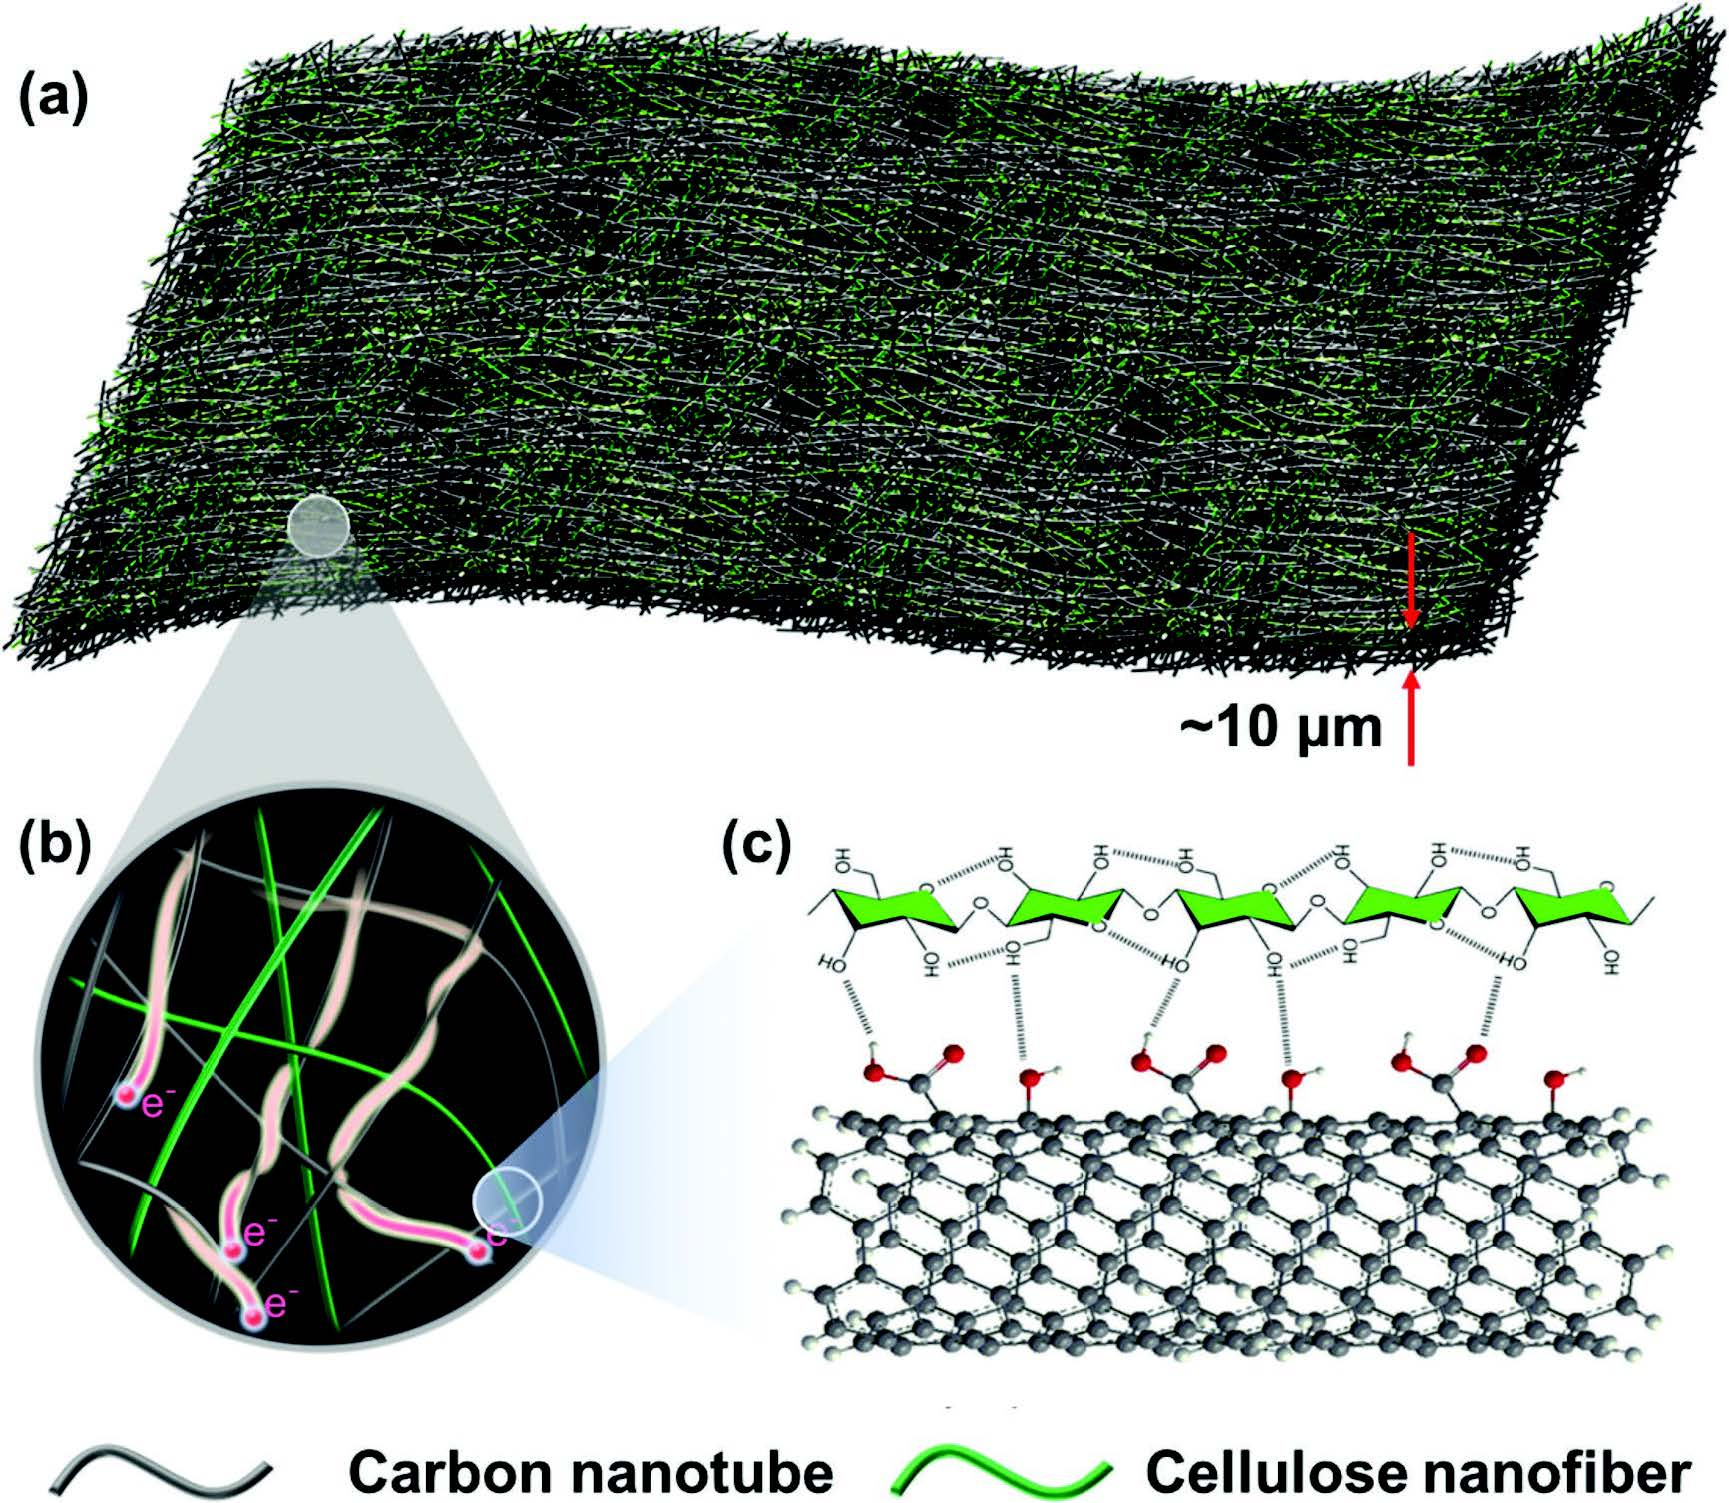 a) Schematic illustrations of the carbon nanotube (CNT)–cellulose nanofiber (CNF), all-fiber based current collectors, where b) CNT provides current pathway and CNF acts as backbone to enable the strength. c) Association exists between CNF and CNT, which enables the stability of CNT in CNF aqueous dispersion and the promising mechanical strength of CNT–CNF film.